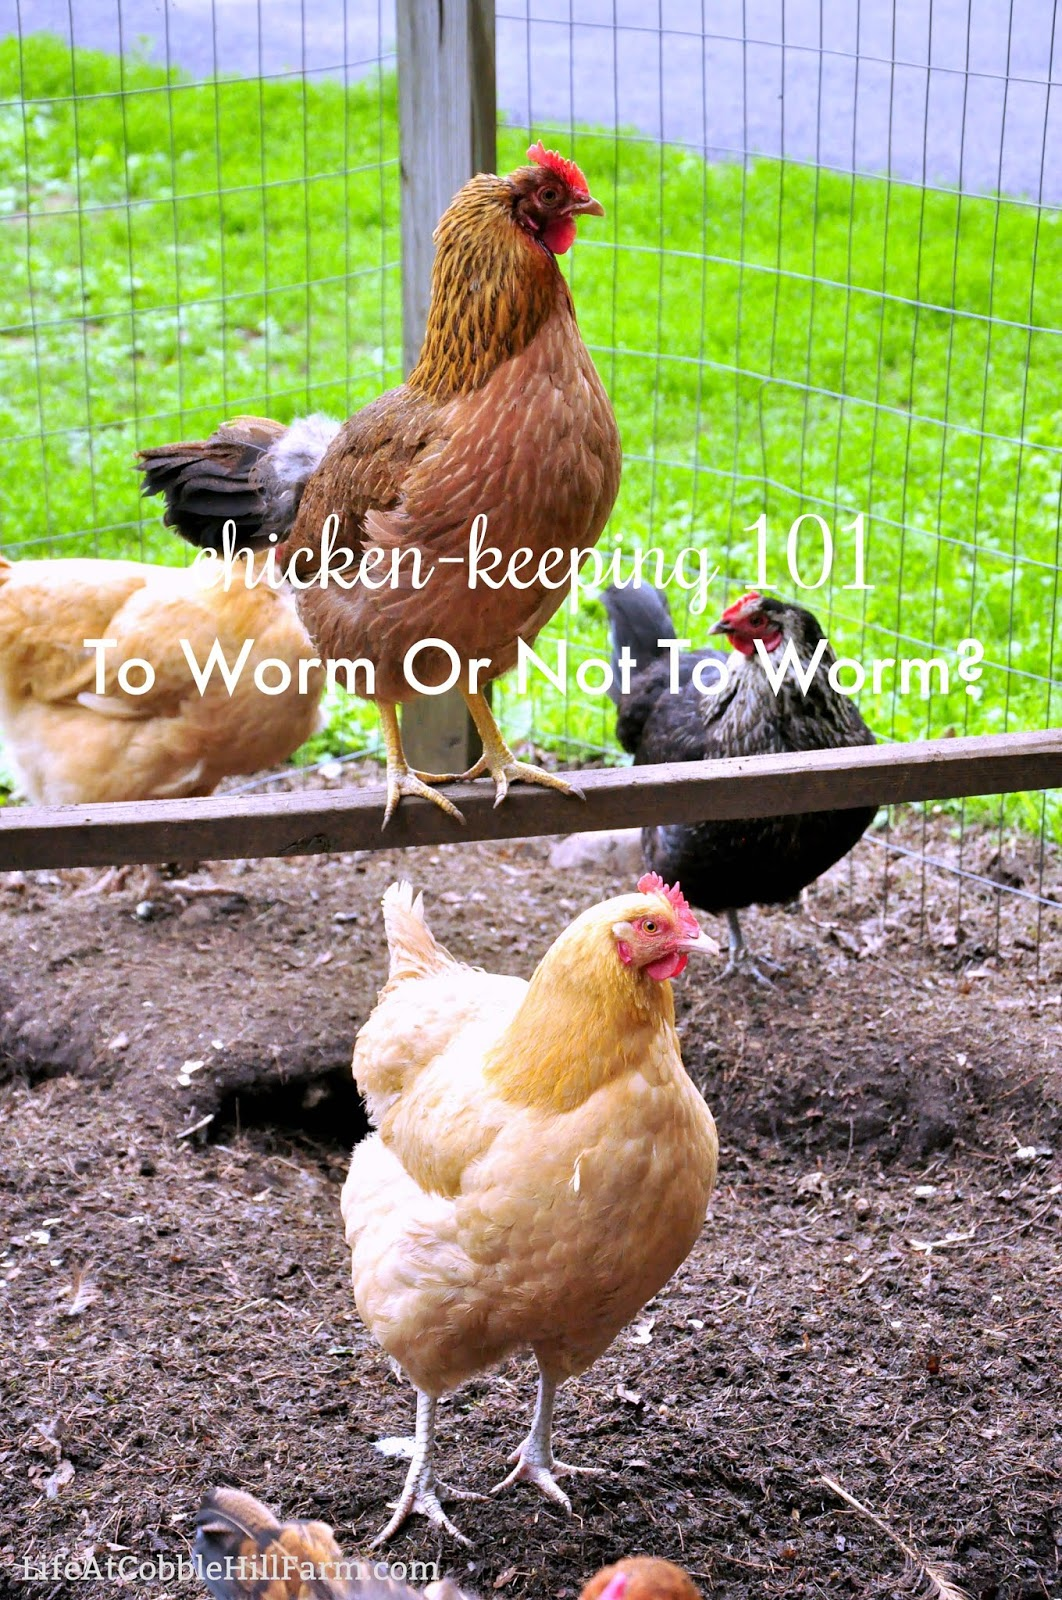 Chicken Keeping: To Worm Or Not To Worm? | Life At Cobble